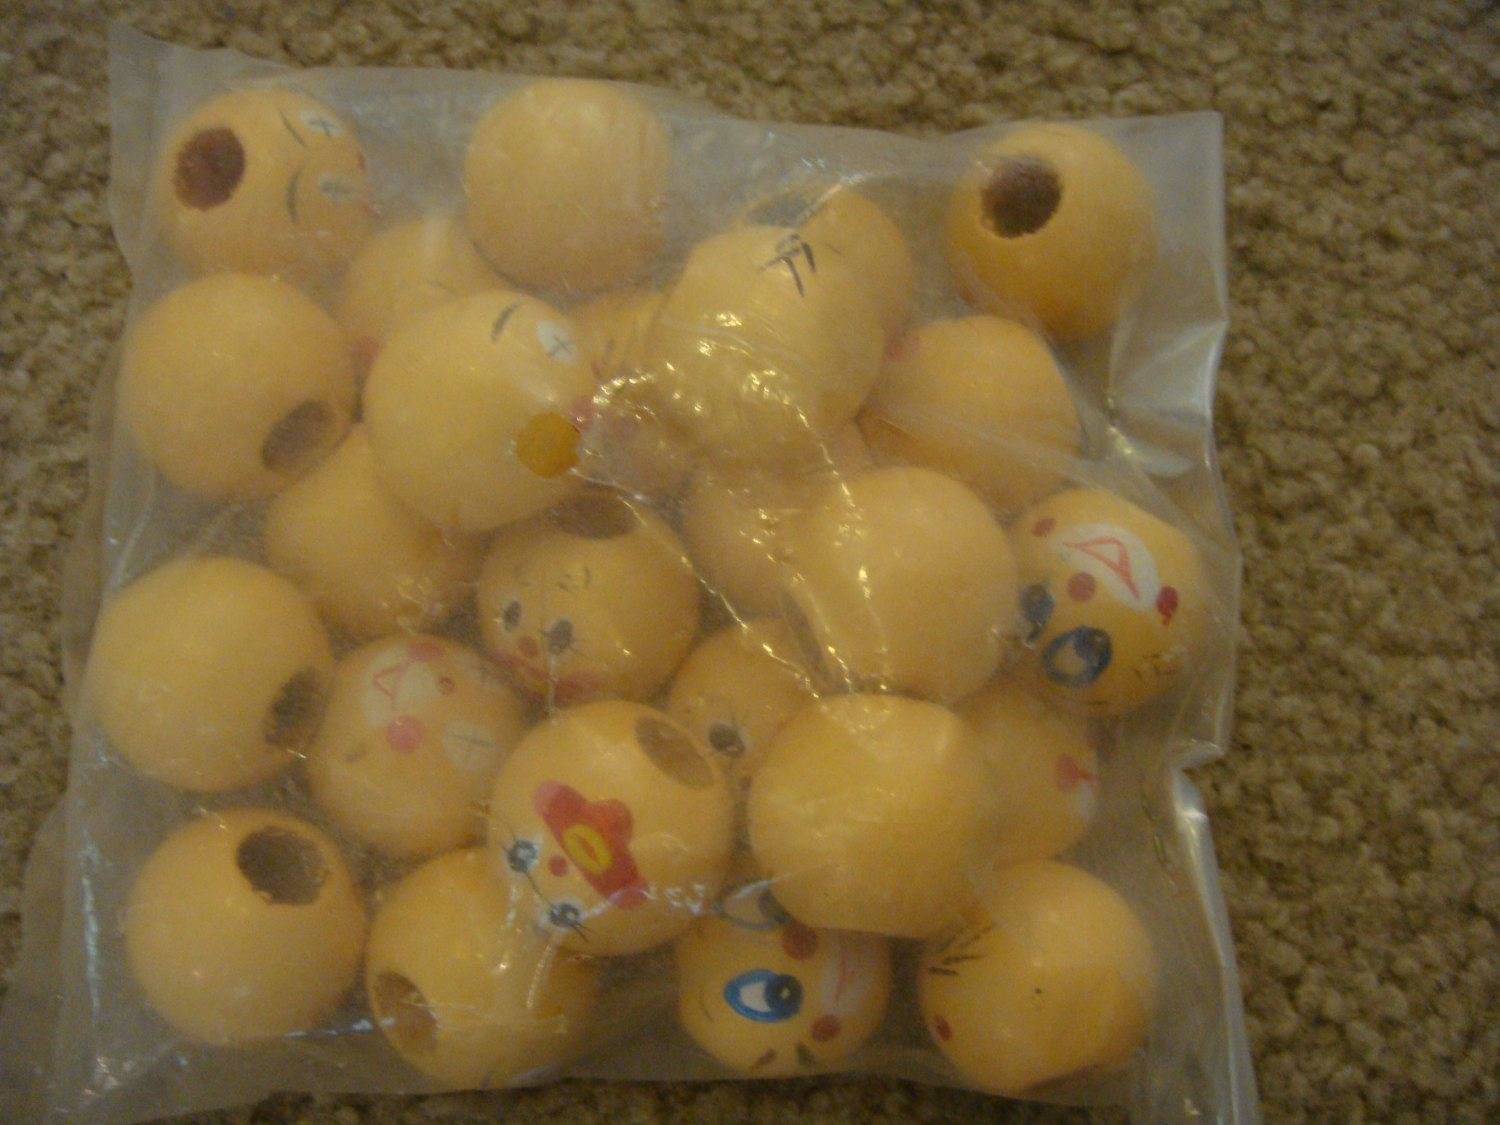 """BEADS lot of 25 wooden doll heads painted faces 1"""" vintage darcie puppets clowns craft sewing supplies by keriblue4 on Etsy"""